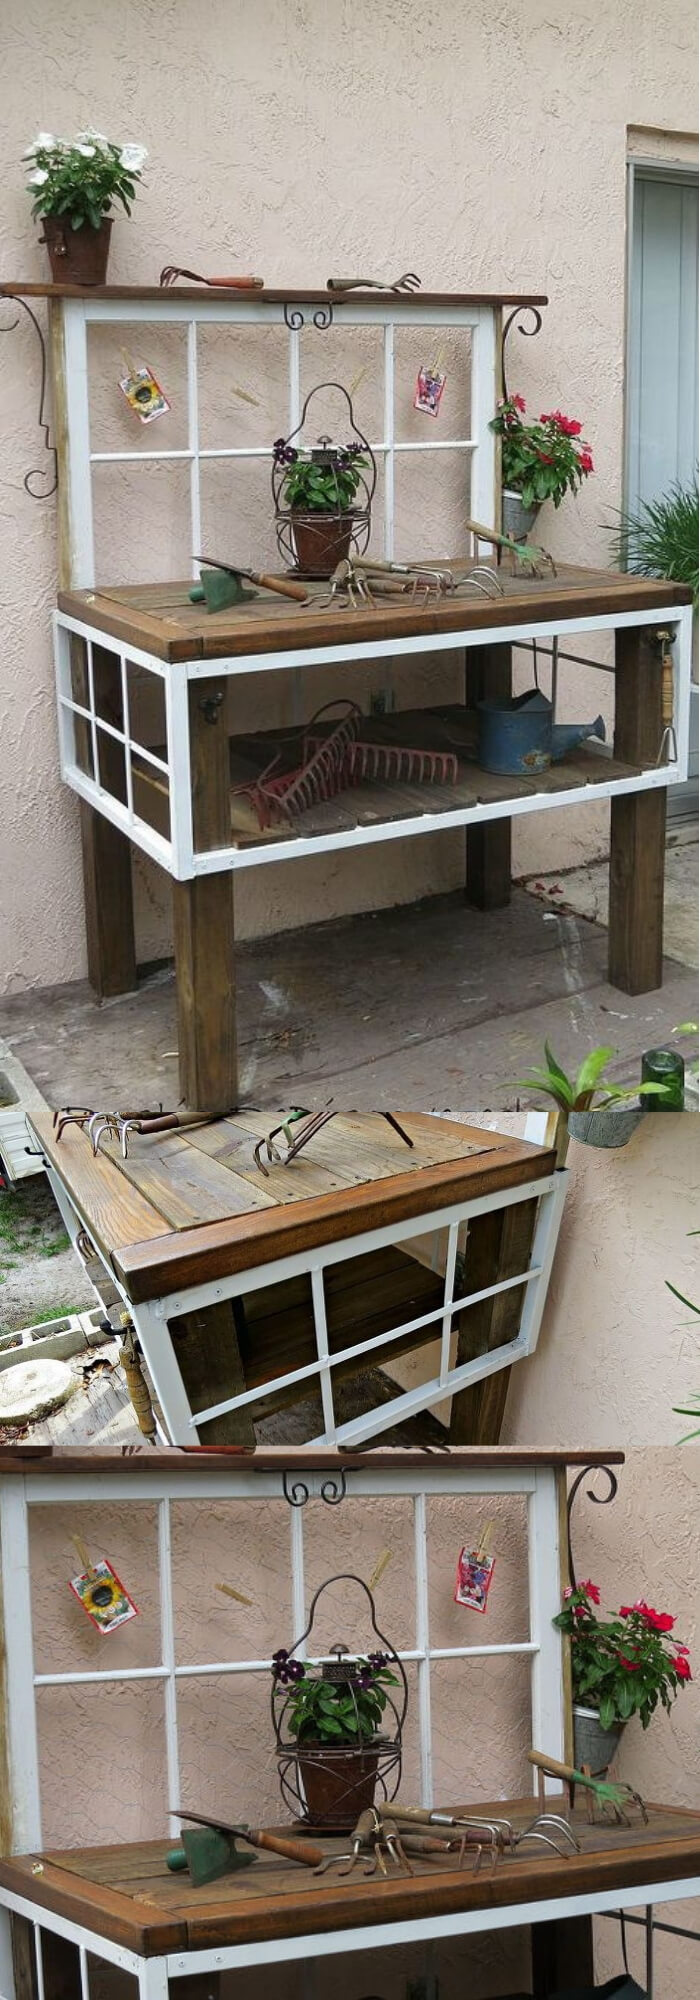 Vintage Tool Potting Bench from old window frame | Creative DIY Outdoor Window Decor Ideas